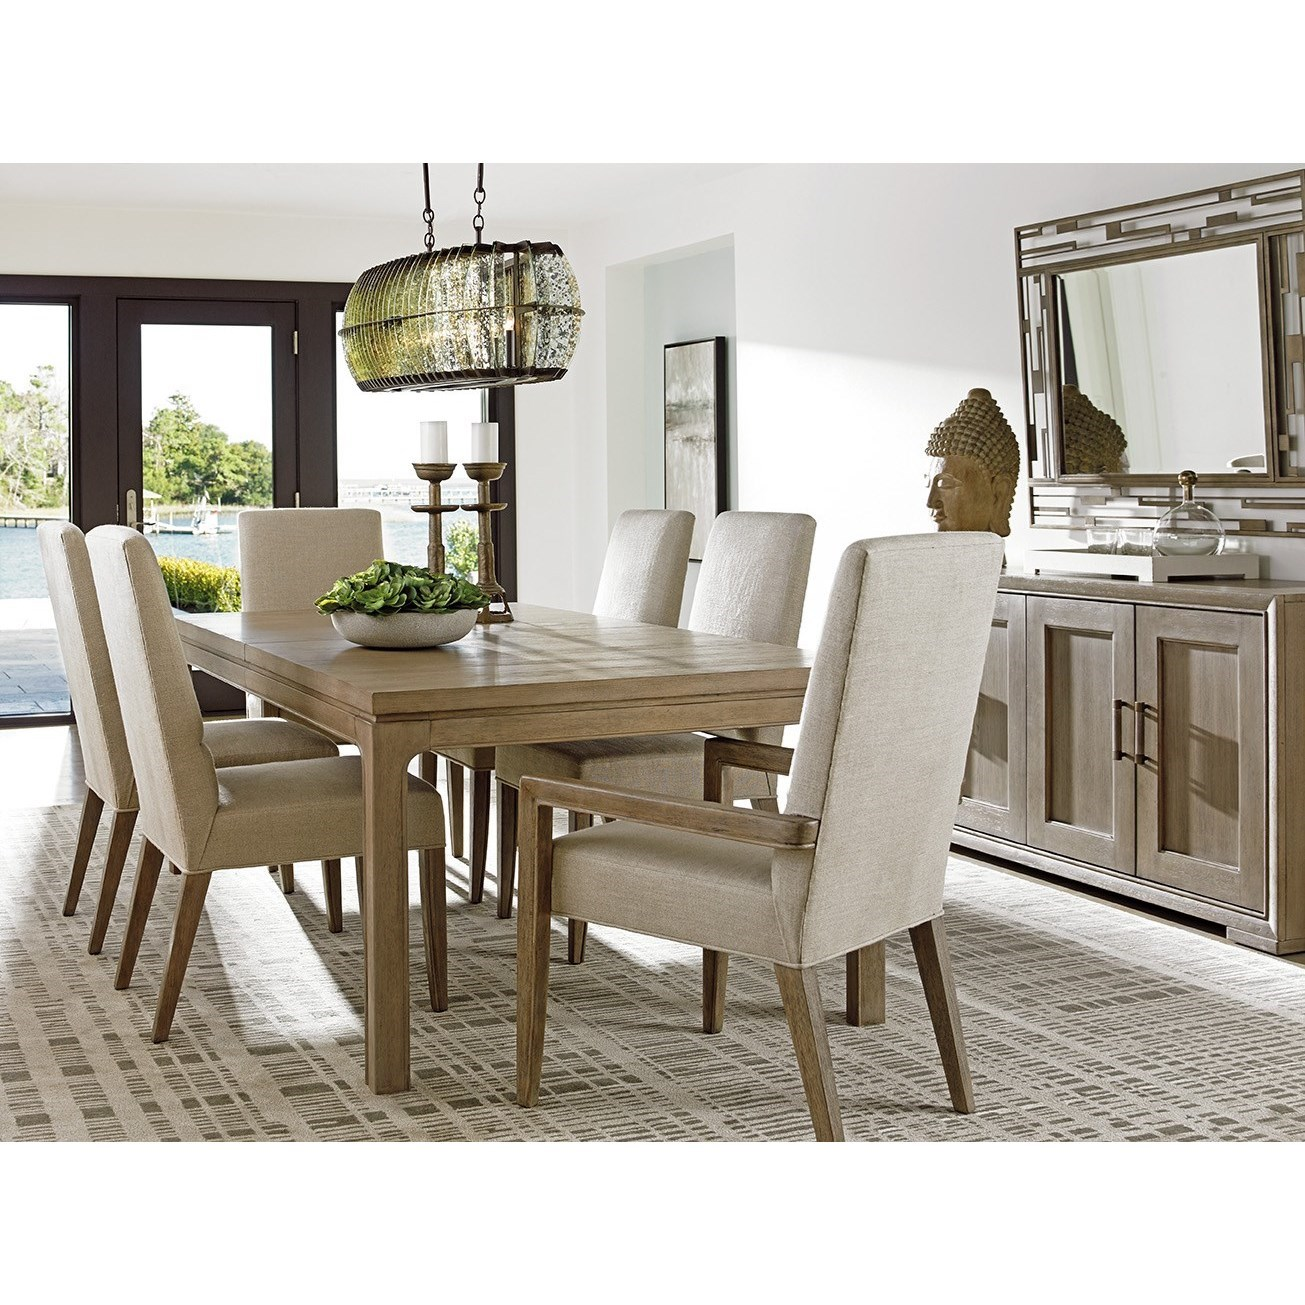 Lexington Shadow Play Dining Room Group - Item Number: 725 Dining Room Group 3